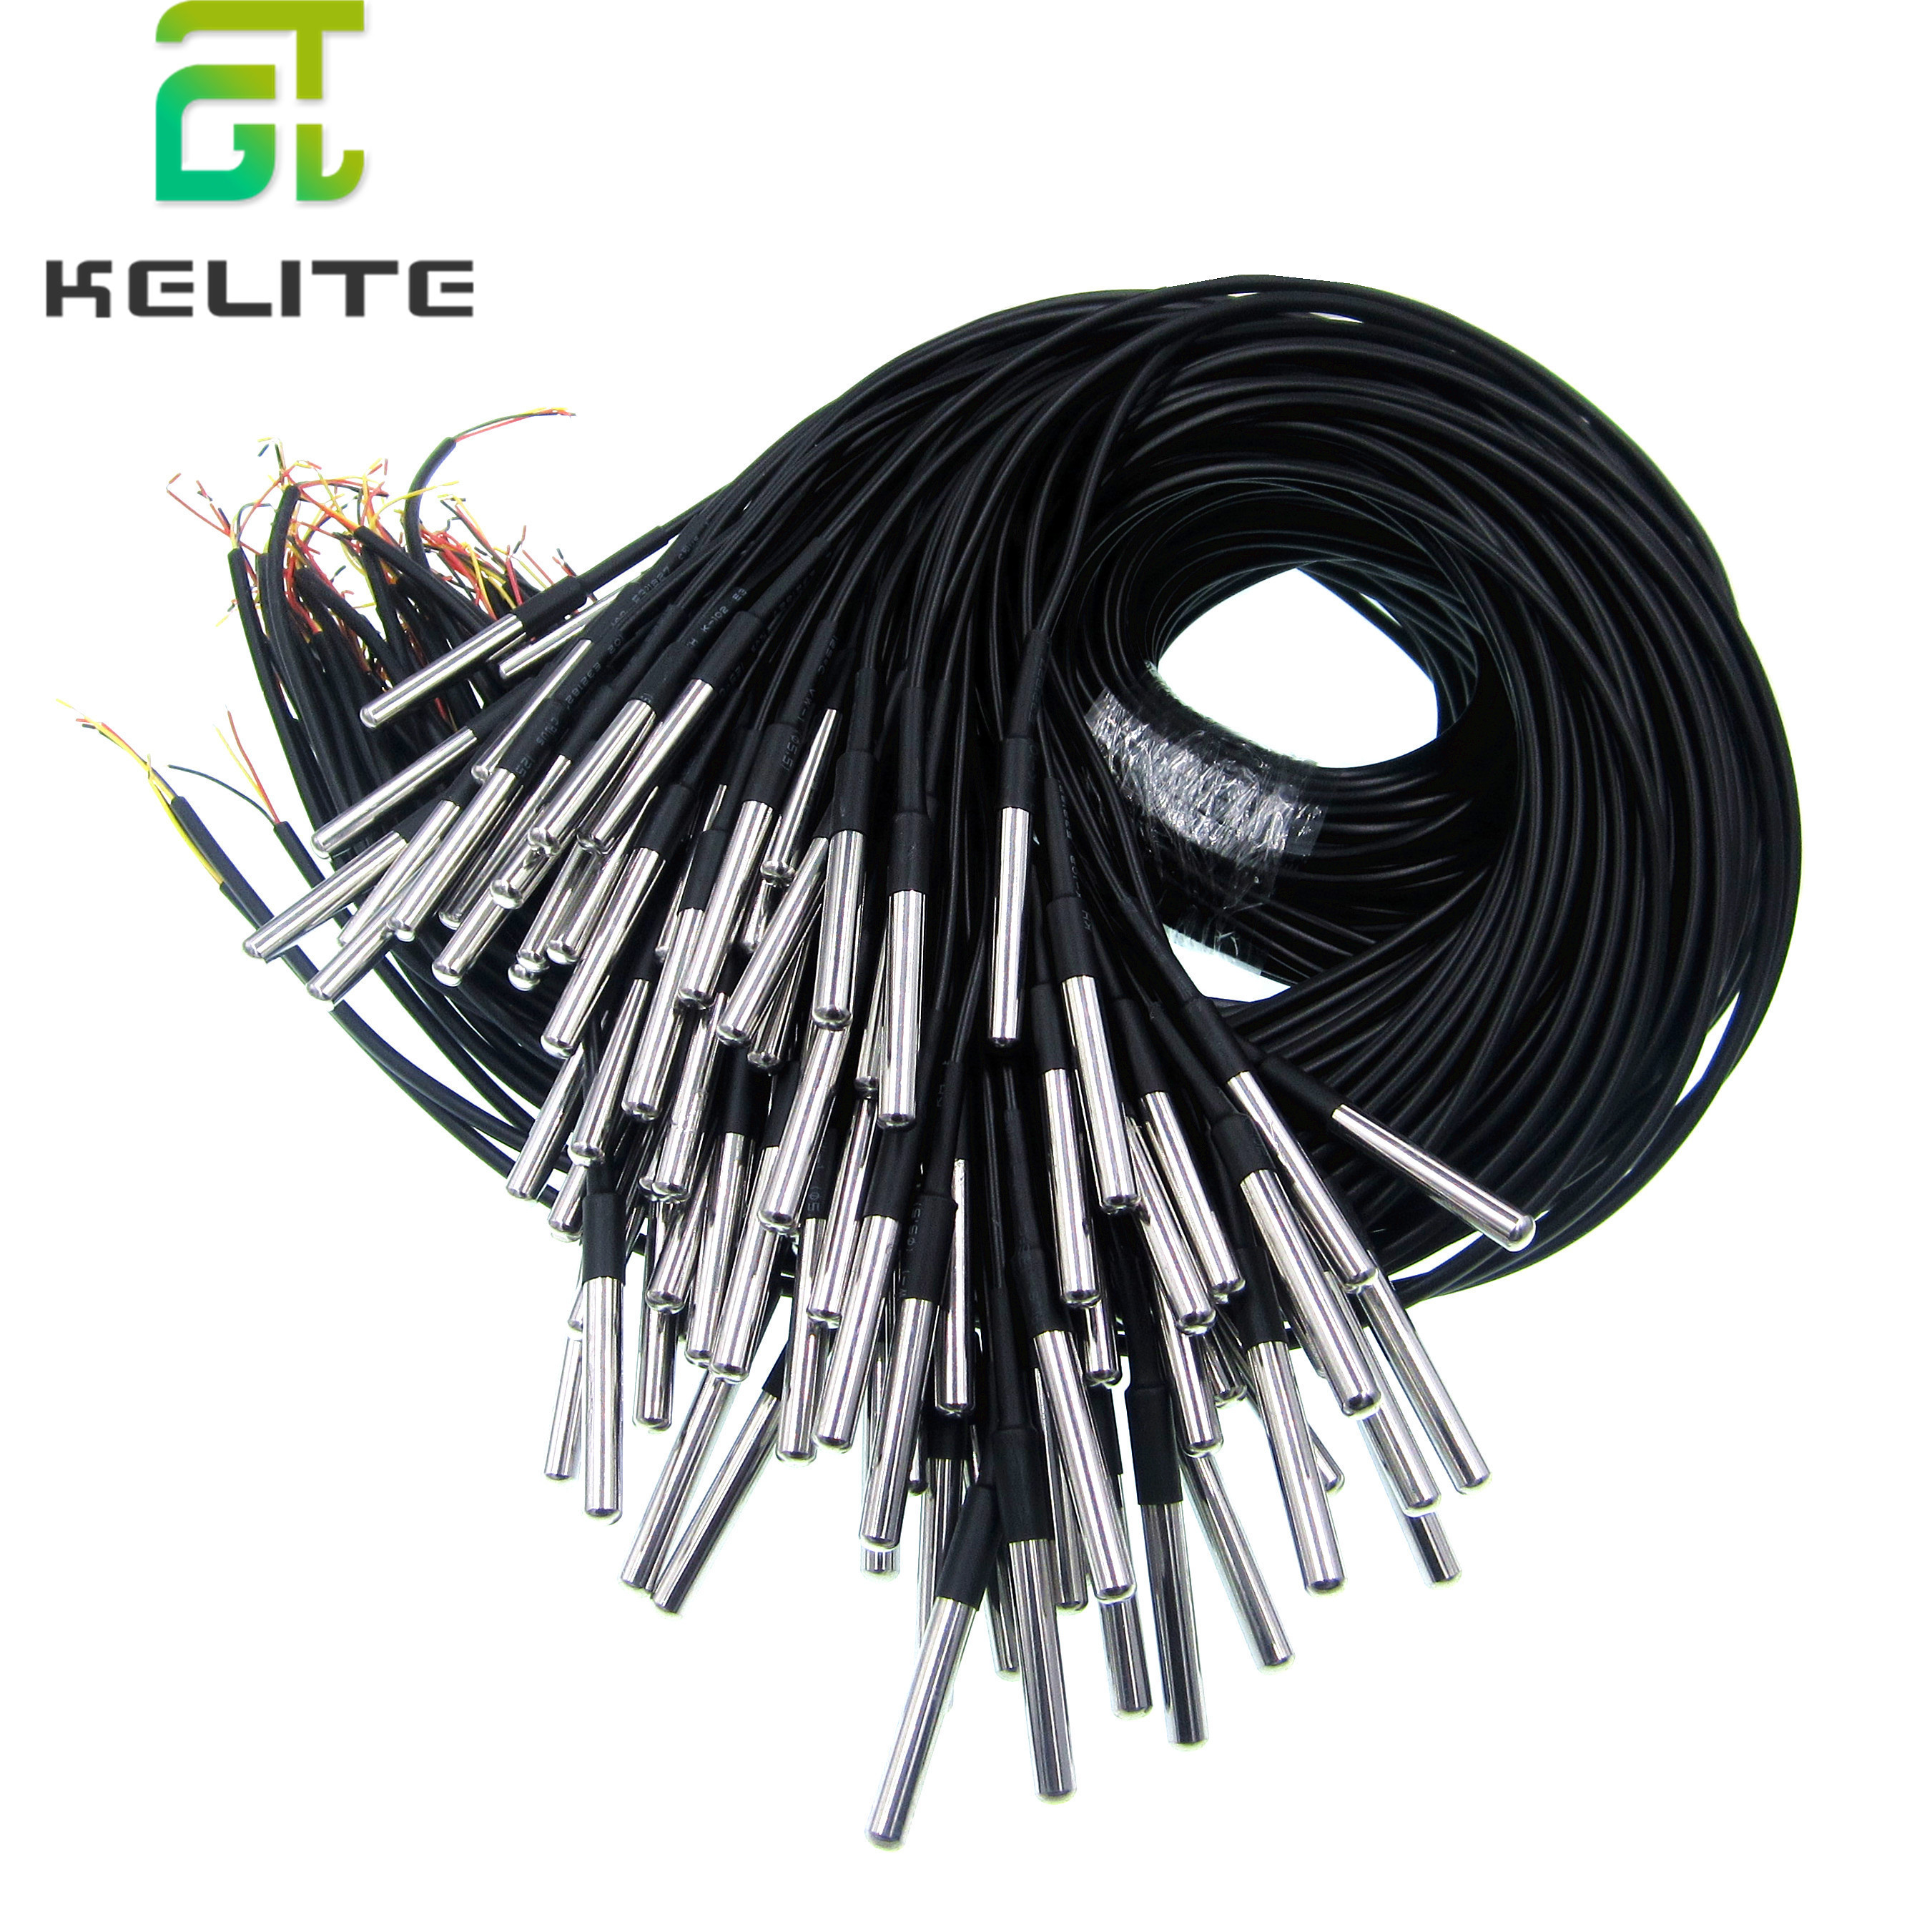 20pcs/lot Stainless Steel Package Waterproof DS18b20 Temperature Probe Temperature Sensor 18B20